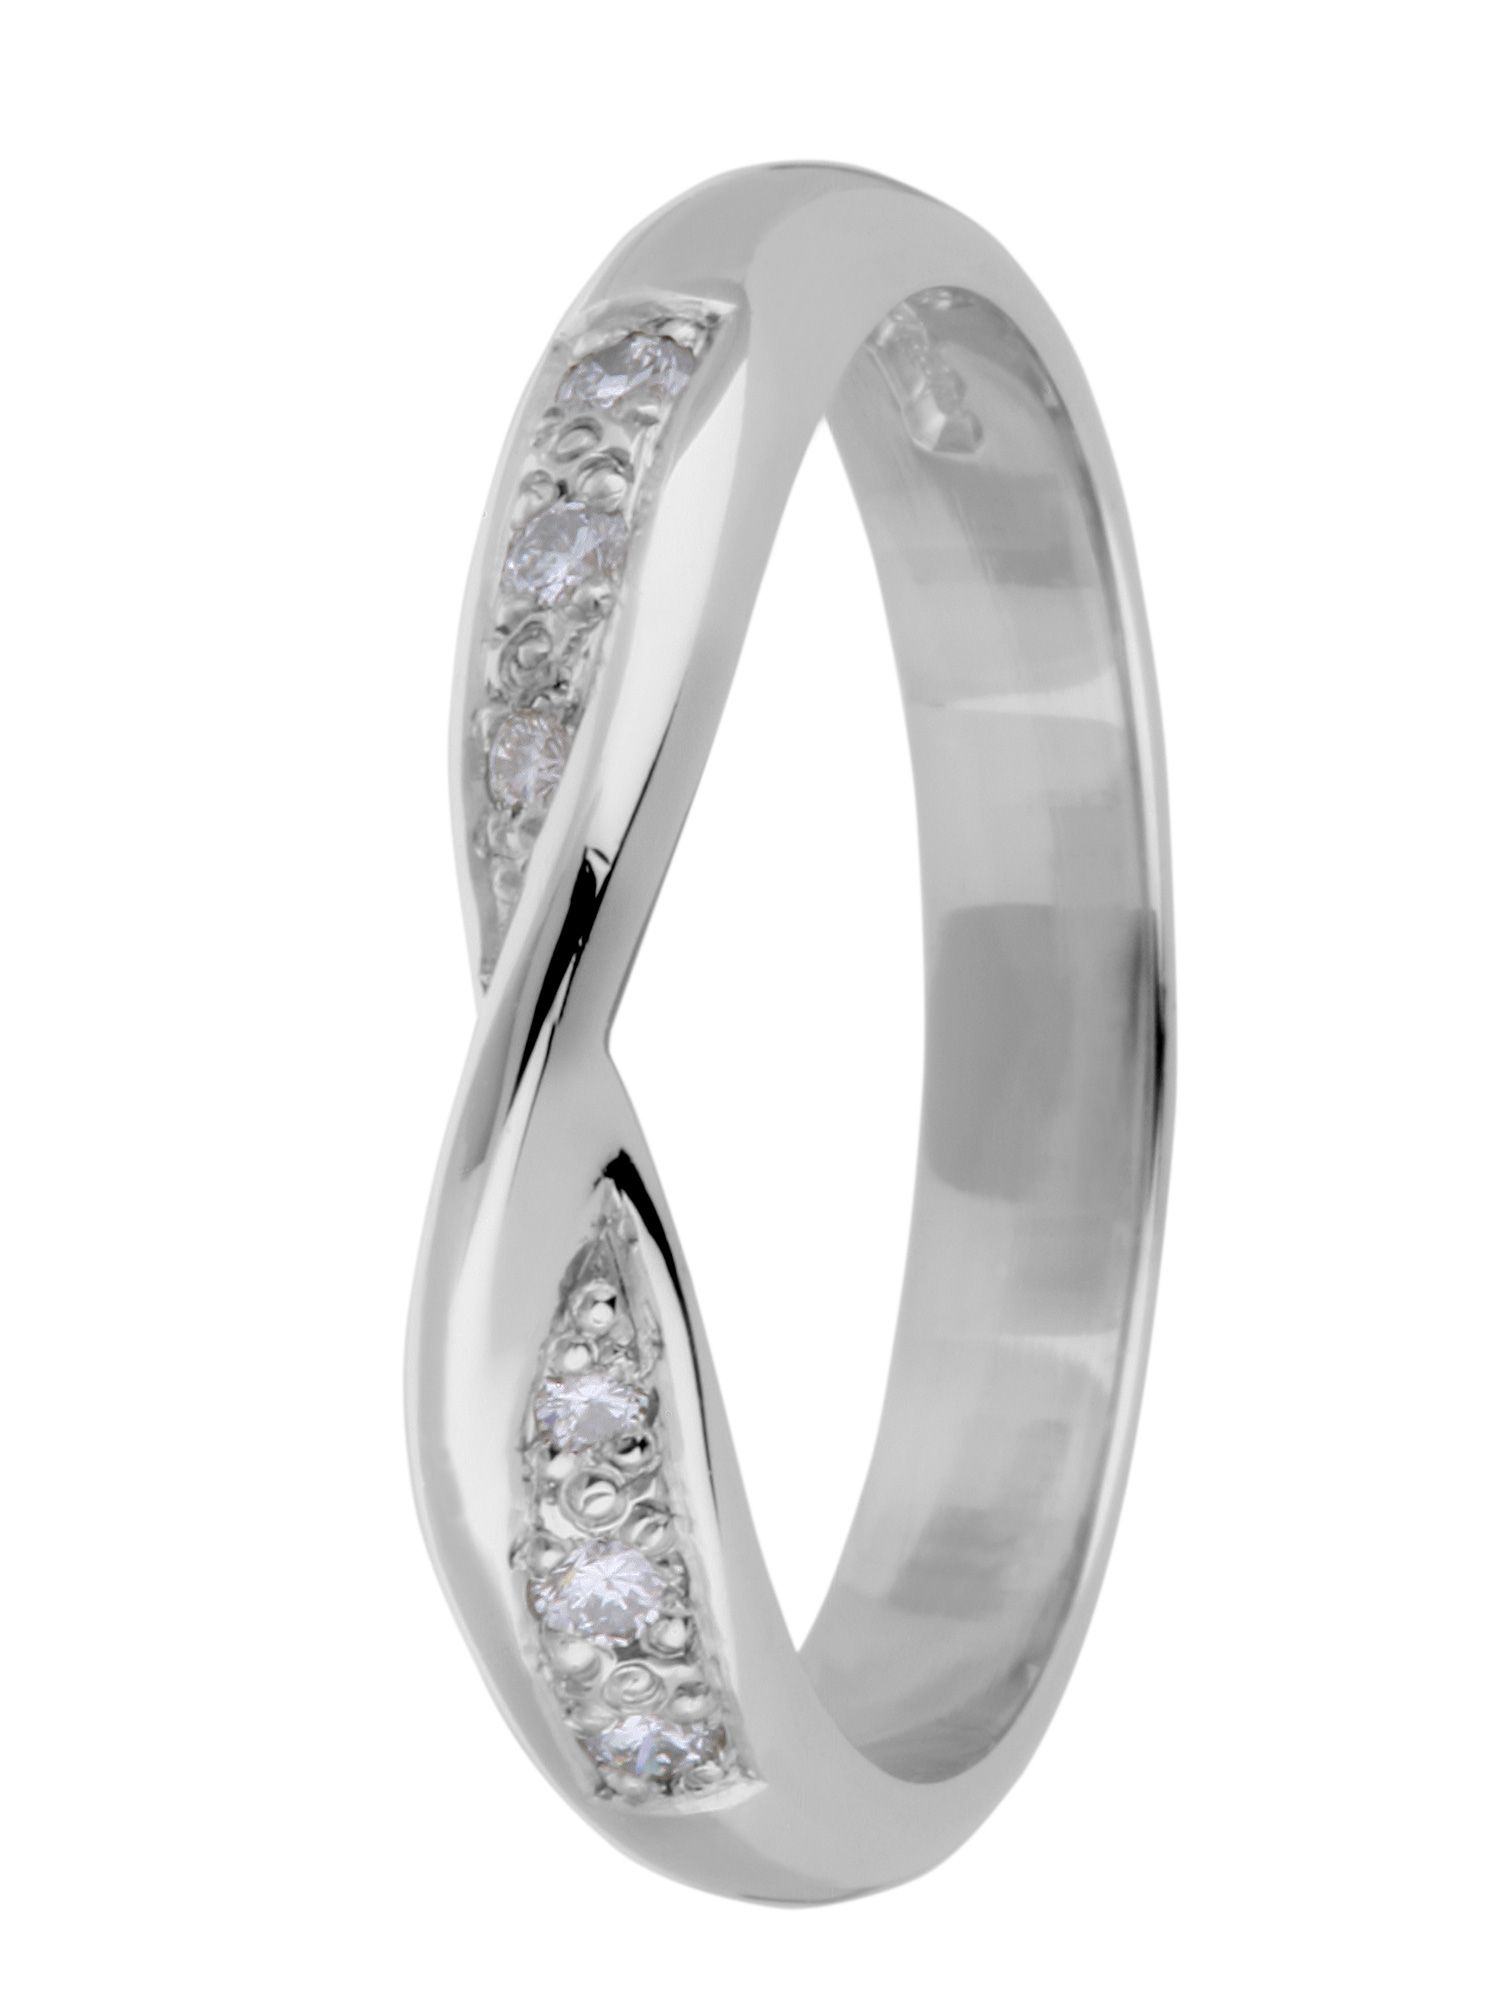 Brides platinum diamond set wedding ring - Silver